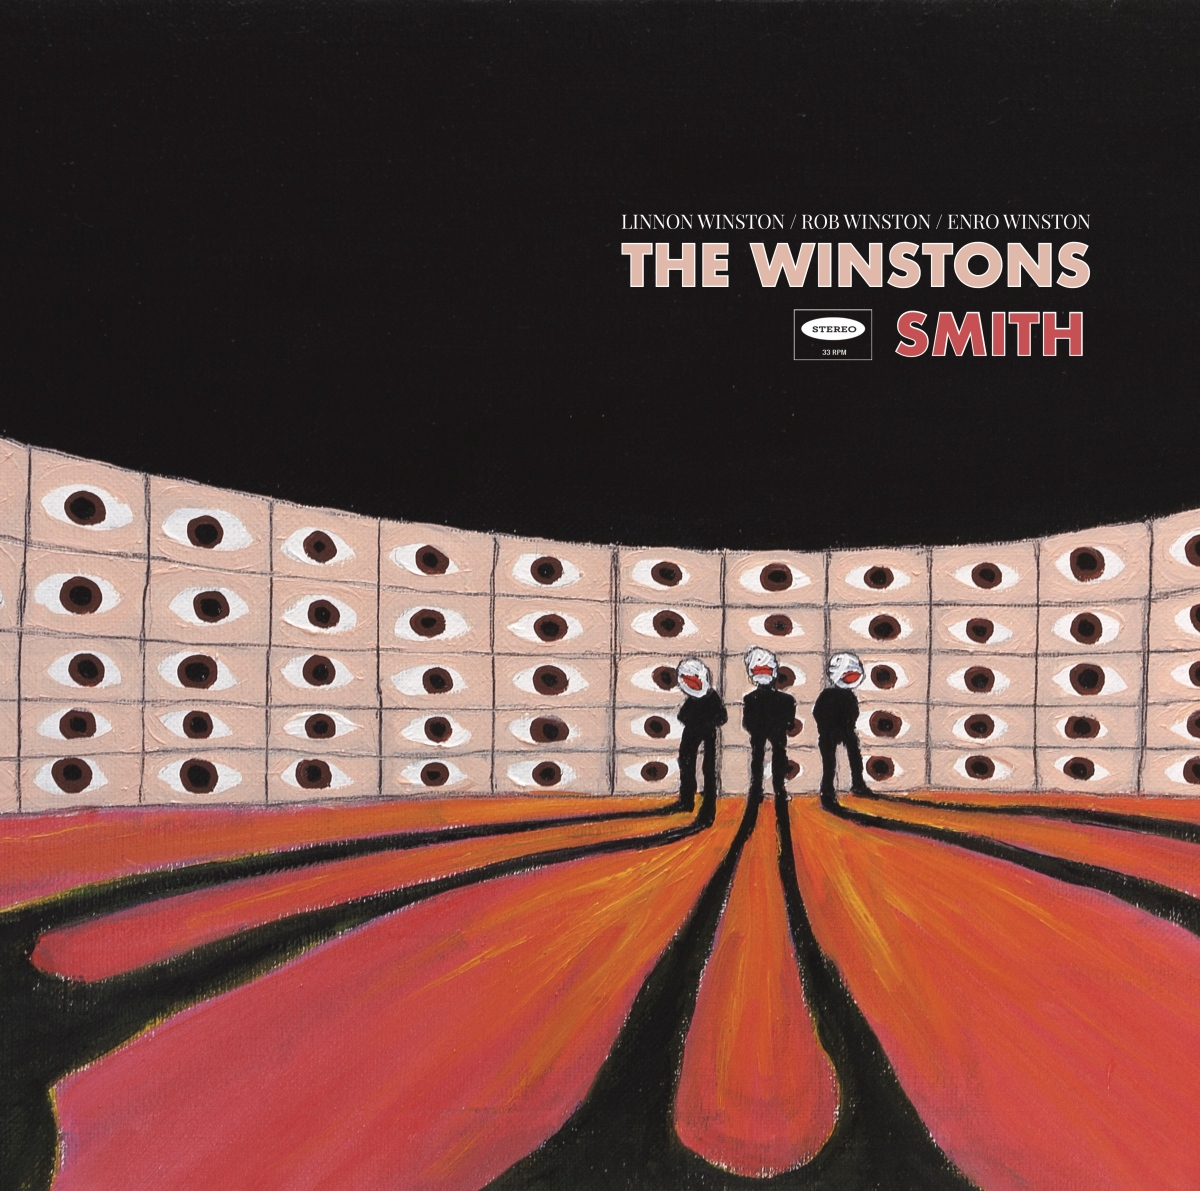 The Winstons - Smith (Sony Music, 2019)